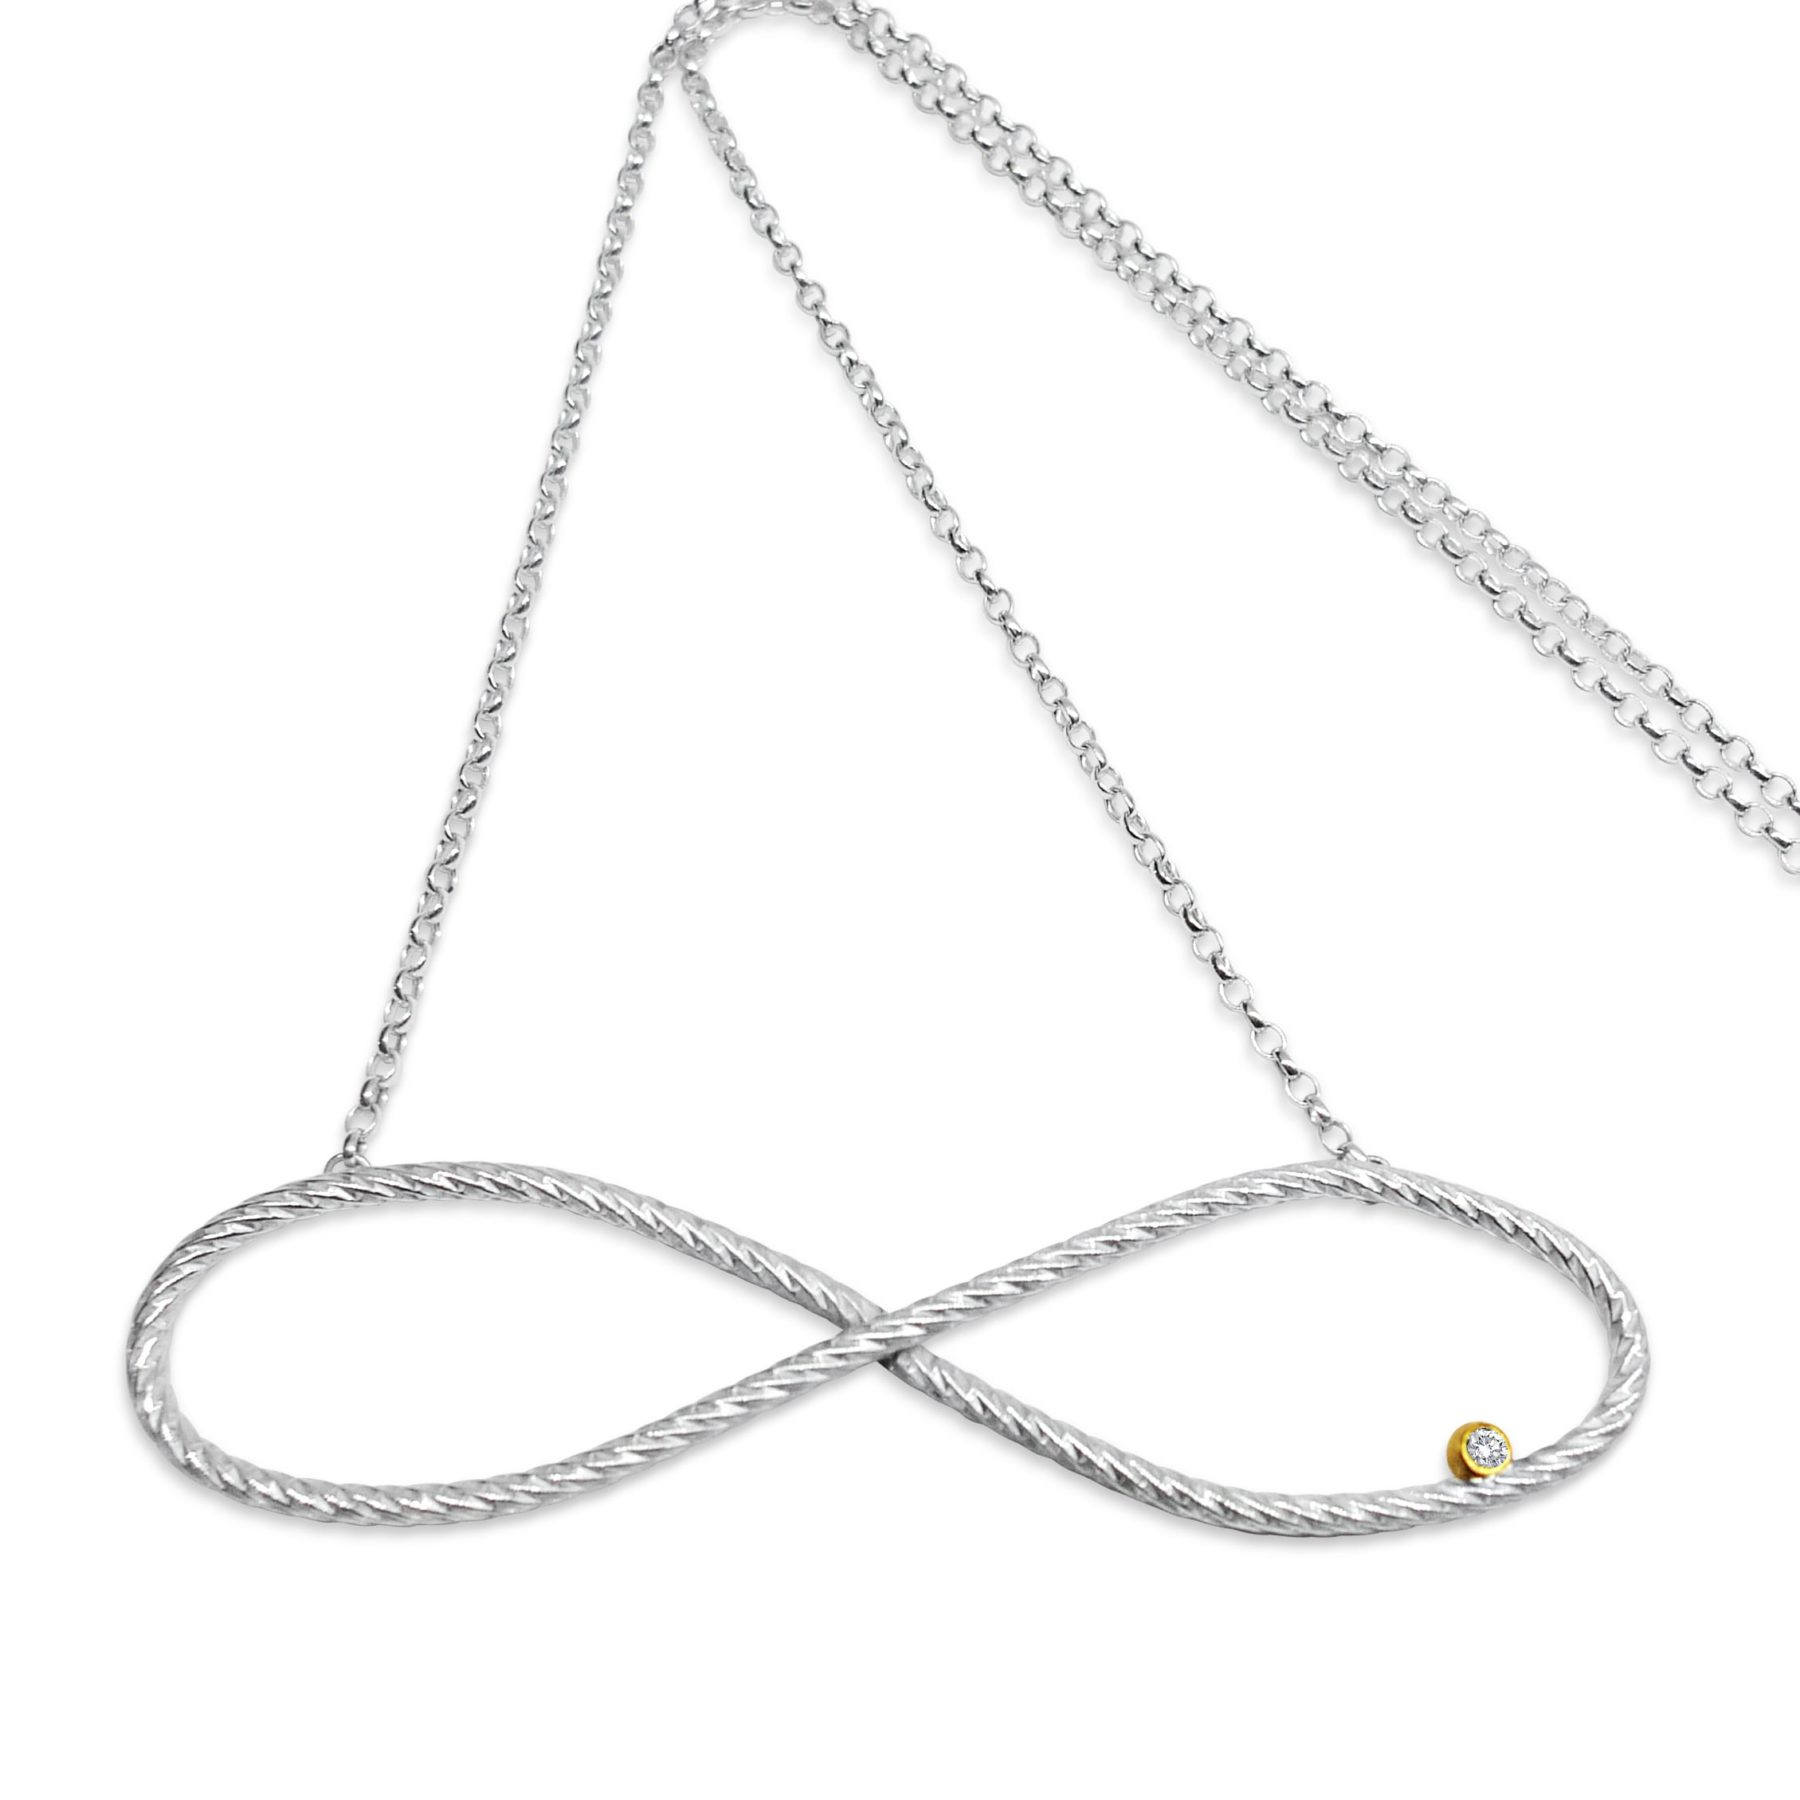 Infinity Belle Necklace — Silver & Yellow Gold MacAngus Designs